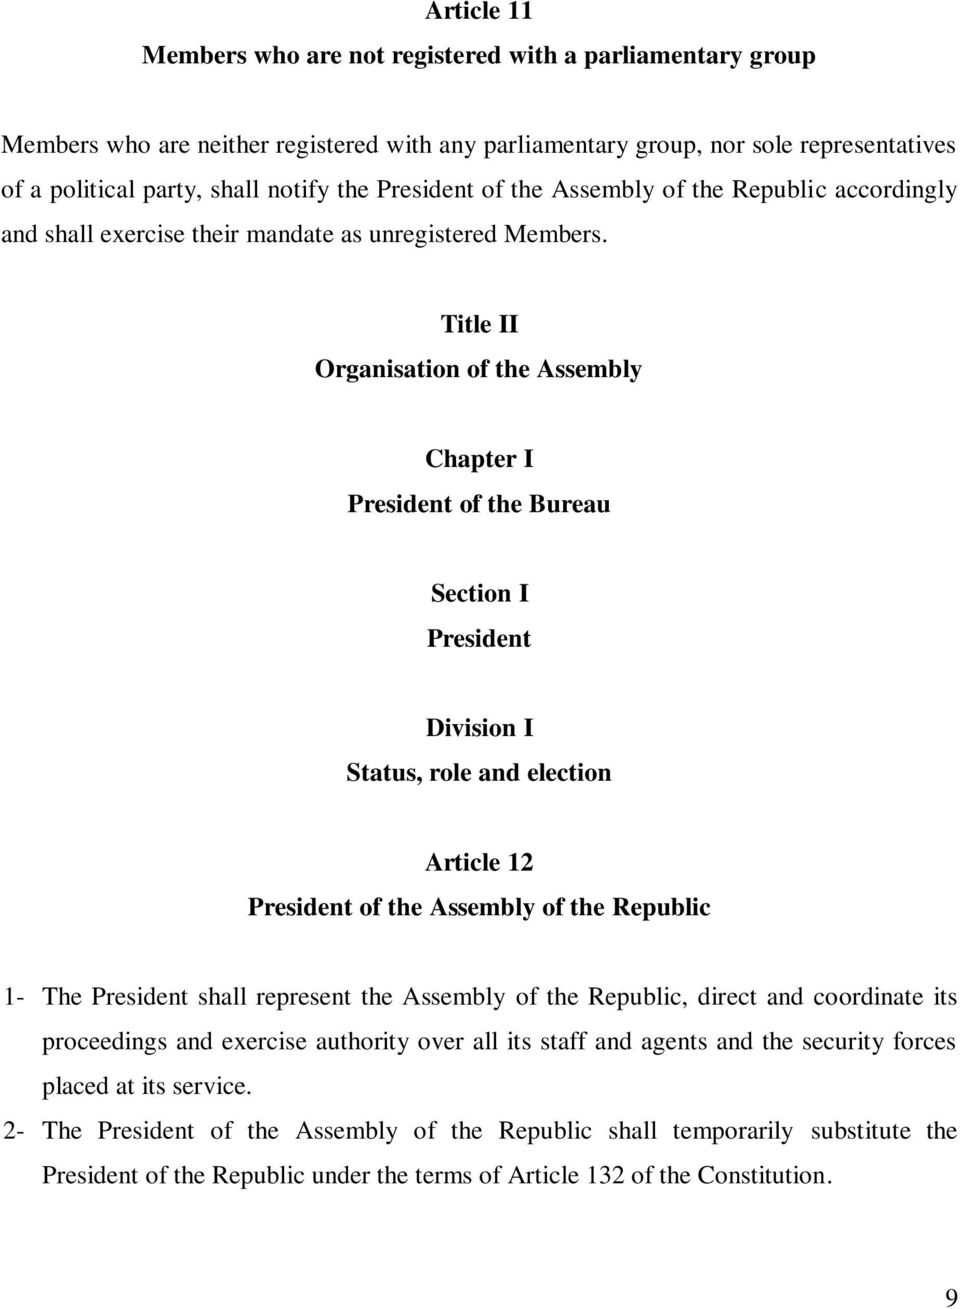 Title II Organisation of the Assembly Chapter I President of the Bureau Section I President Division I Status, role and election Article 12 President of the Assembly of the Republic 1- The President